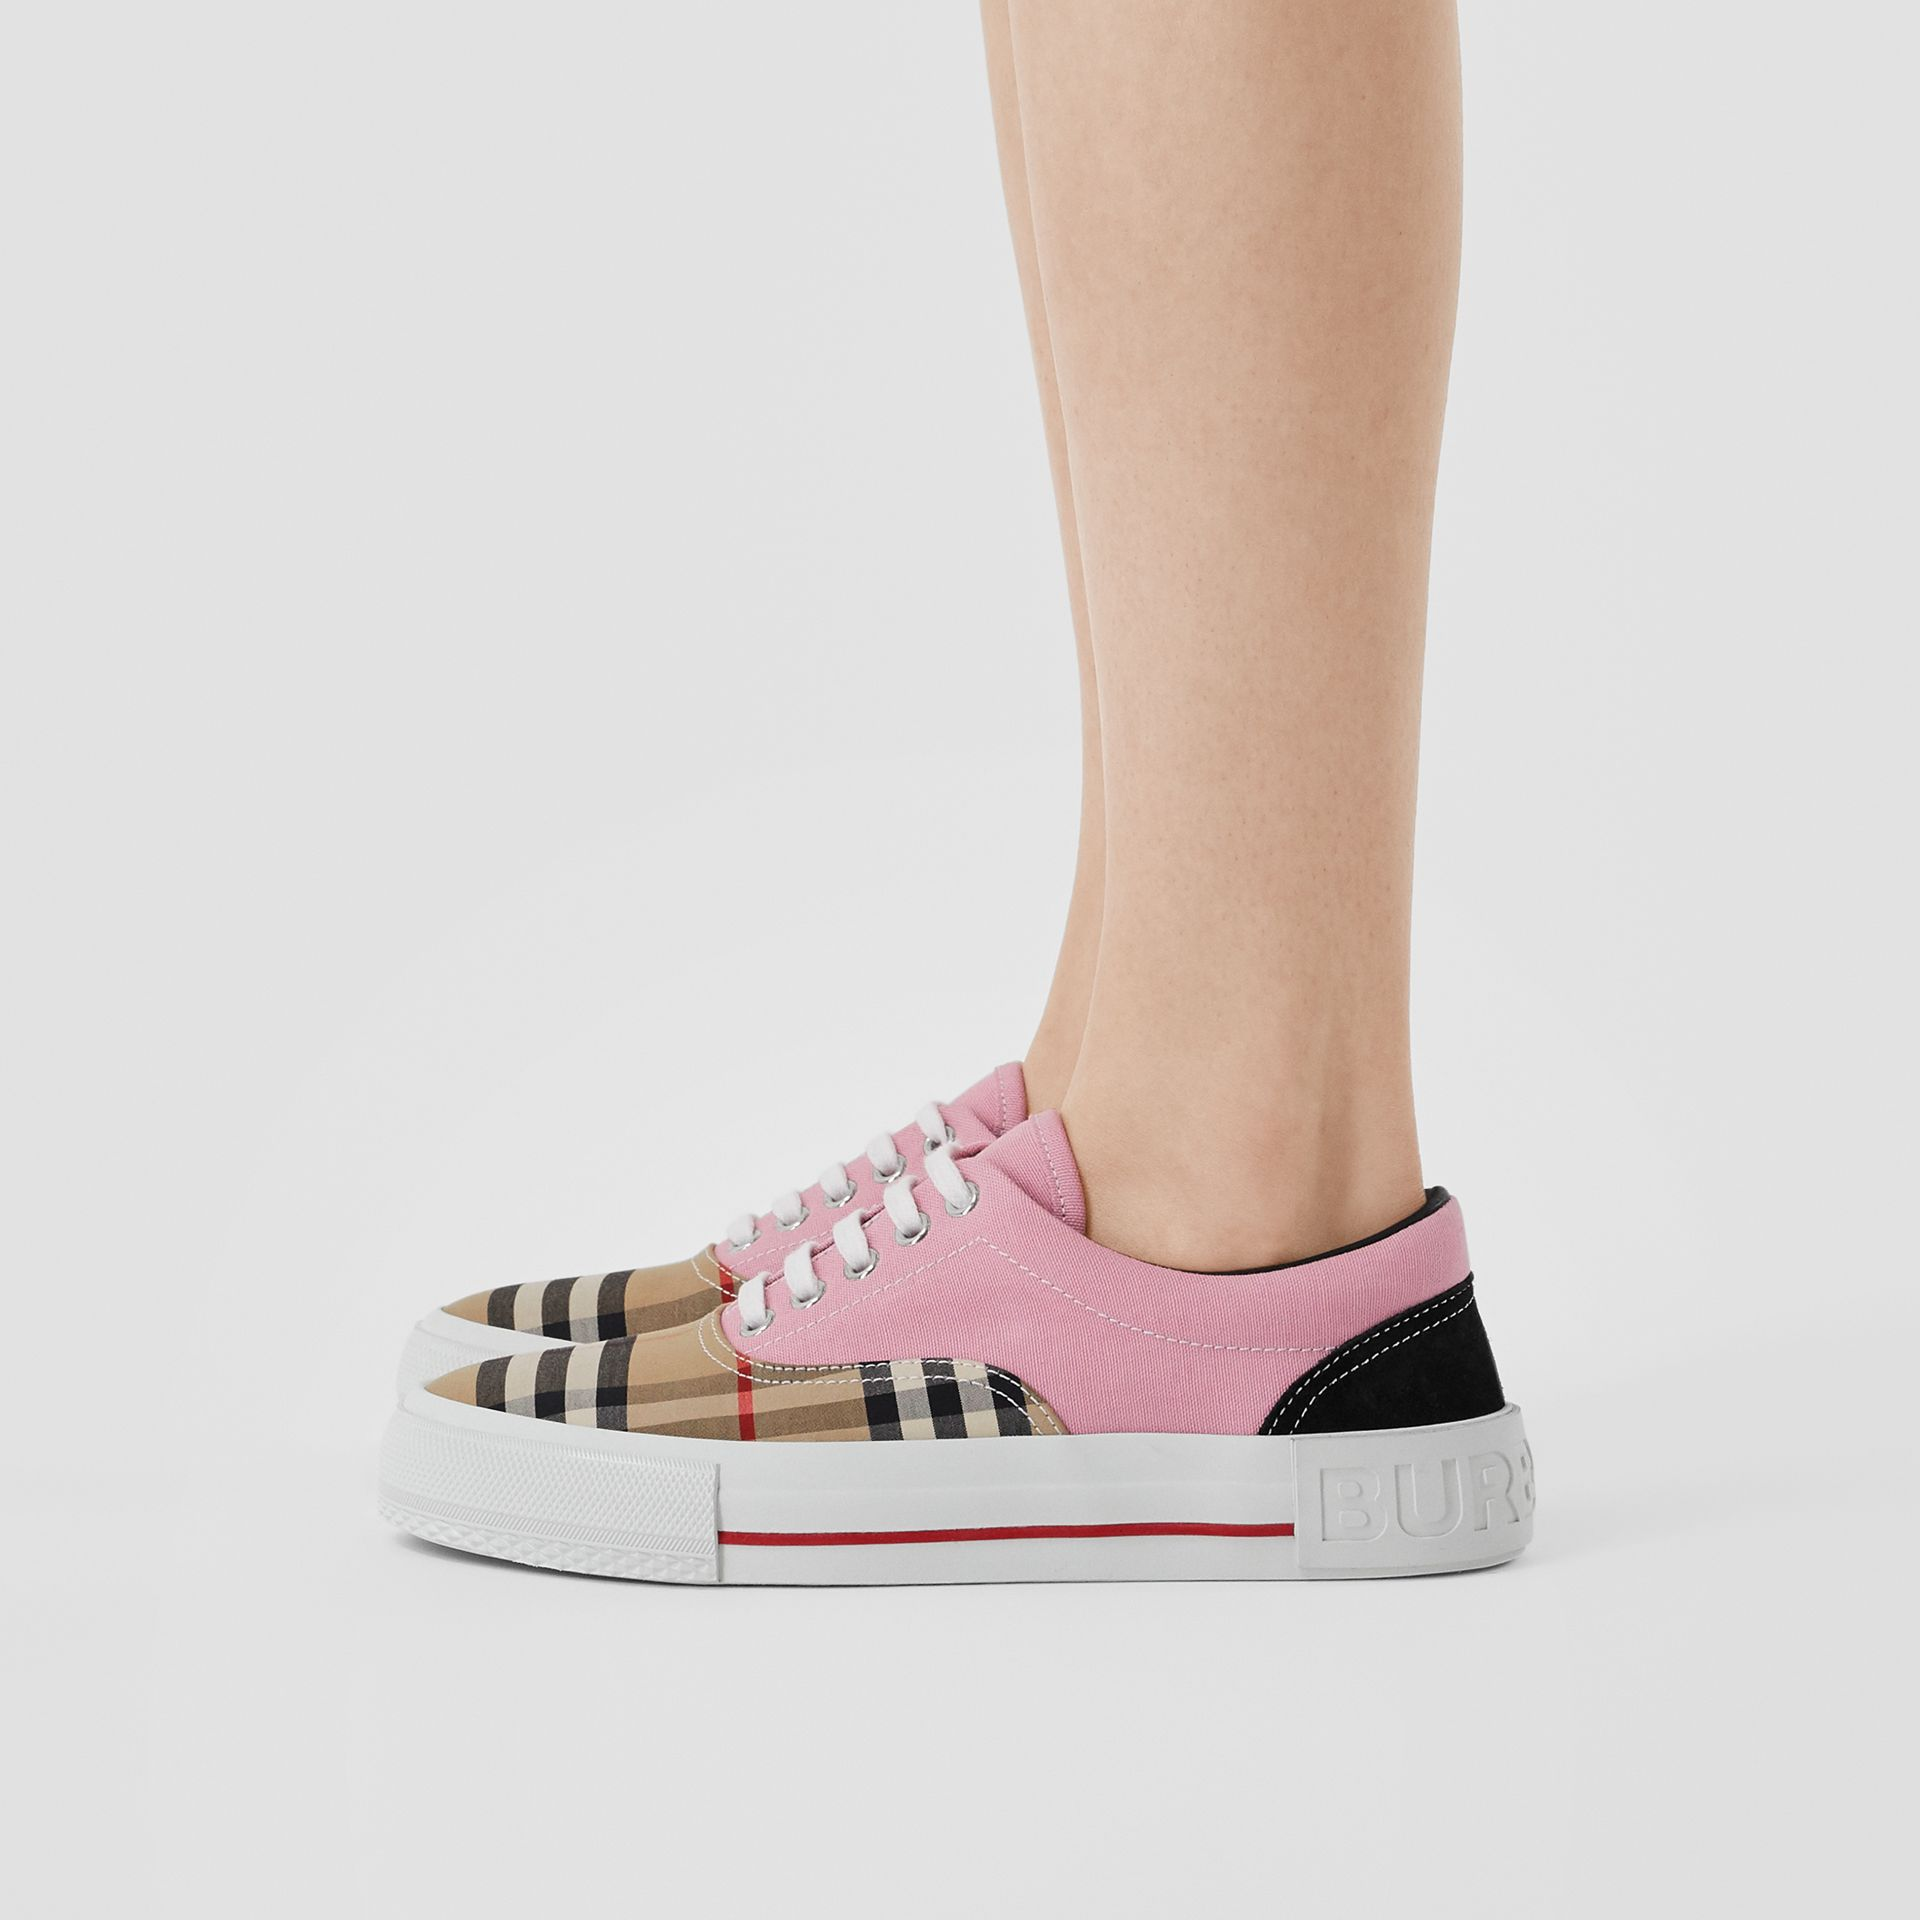 Vintage Check, Cotton Canvas and Suede Sneakers in Archive Beige/pink - Women | Burberry Hong Kong S.A.R - gallery image 2